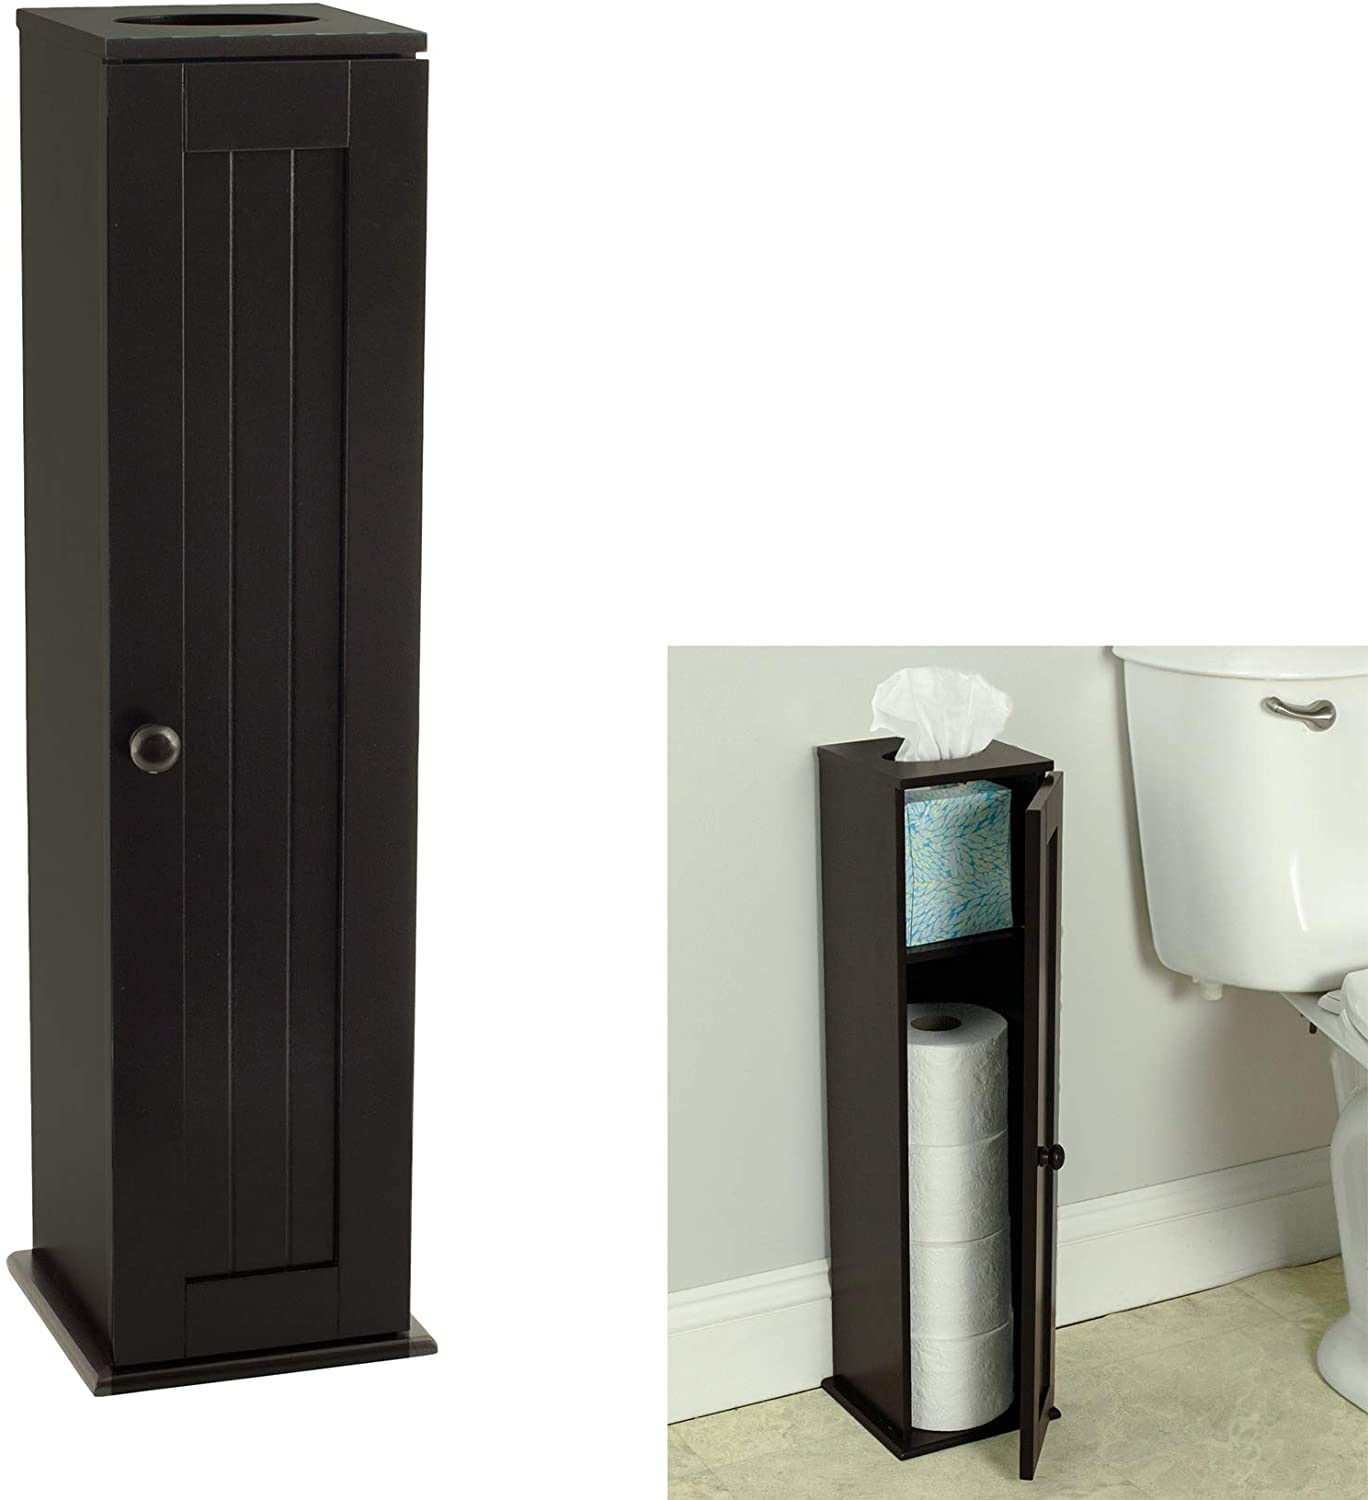 Free Standing Espresso Toilet Bathroom Paper Deluxe Holder Los Angeles Mall Cabinet